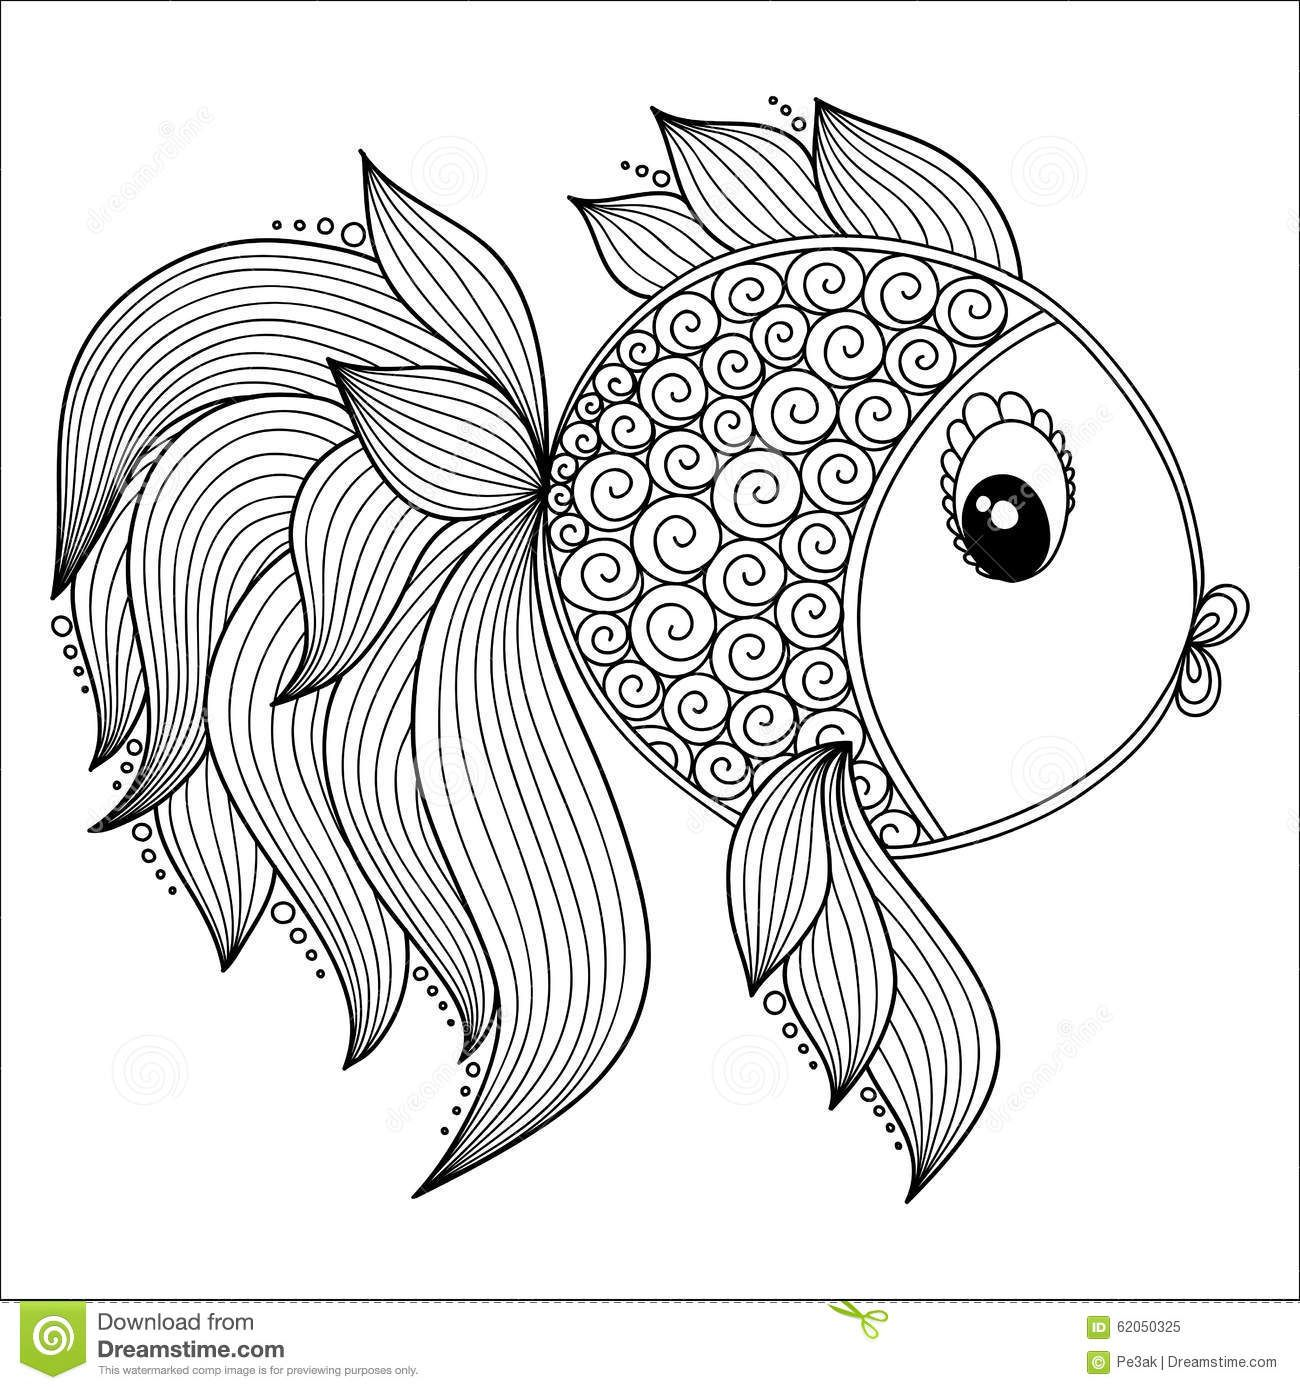 coloring book stock photos images pictures 16473 images - Fish Coloring Pages For Adults